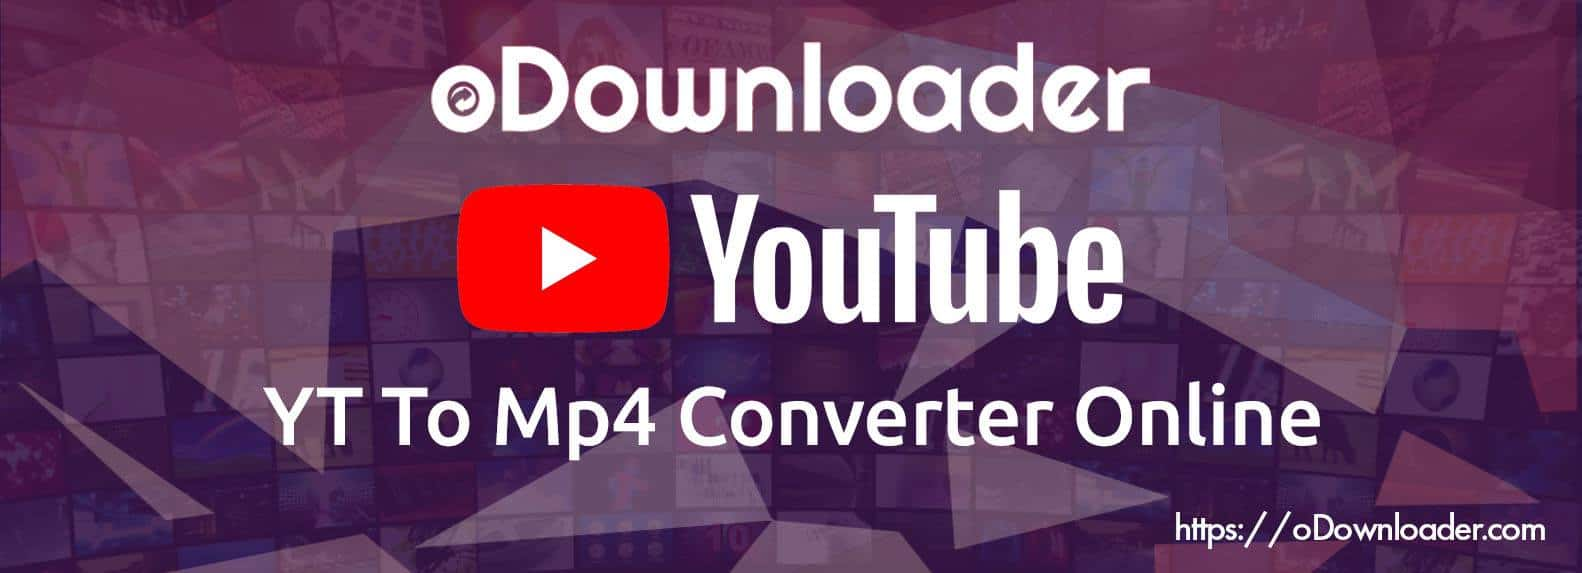 YT to Mp4 Converter Online